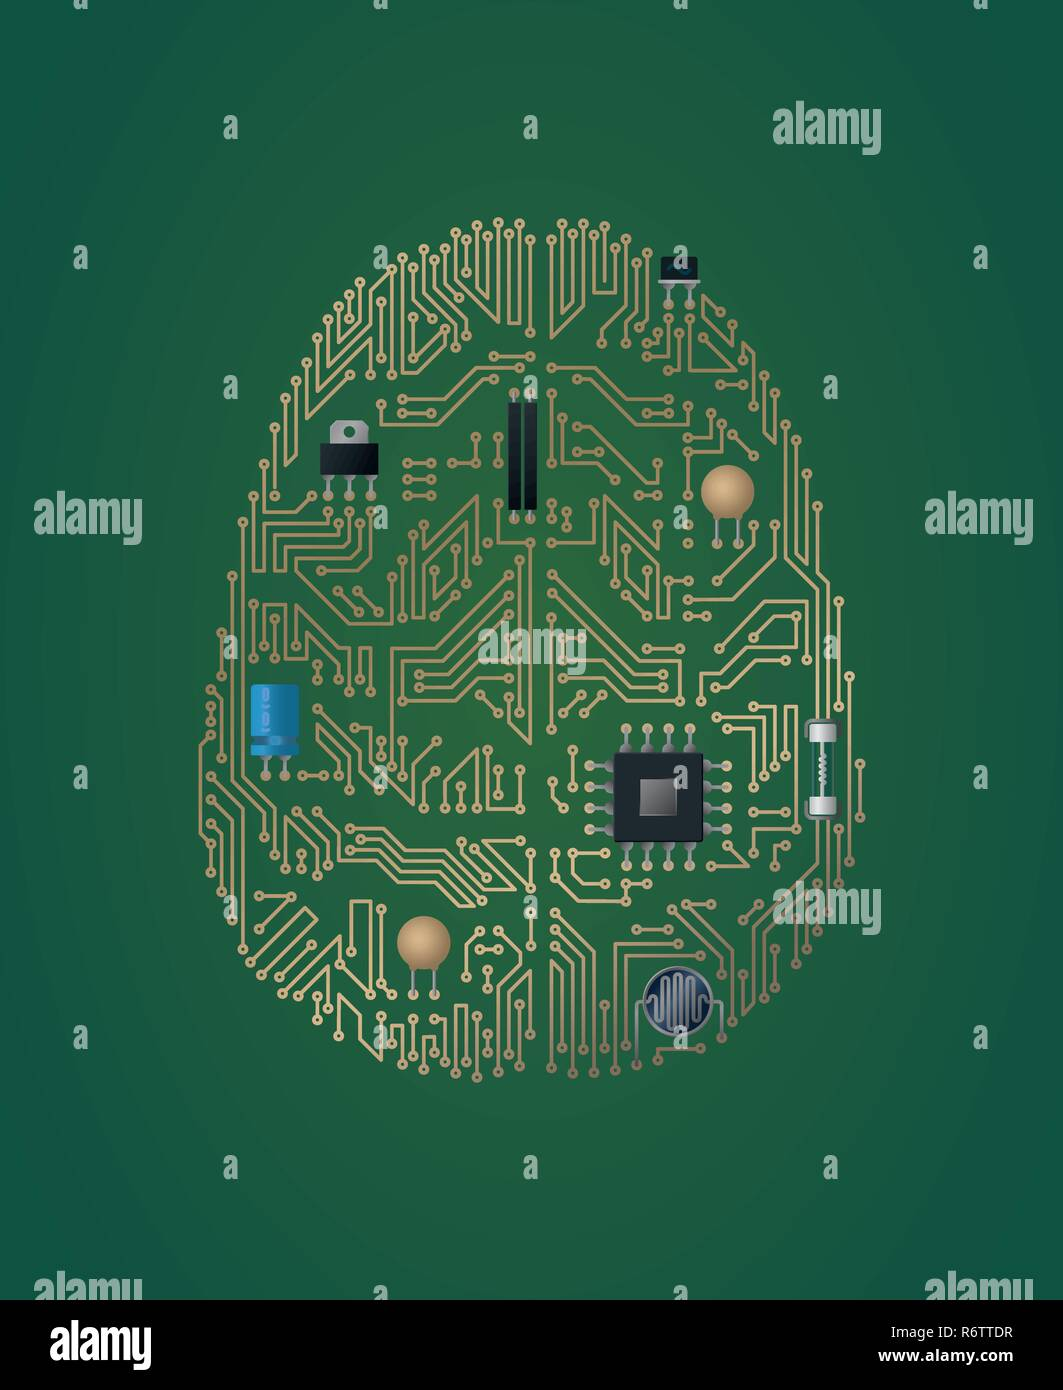 Human brain motherboard vector illustration. Artificial intelligence concept. - Stock Image